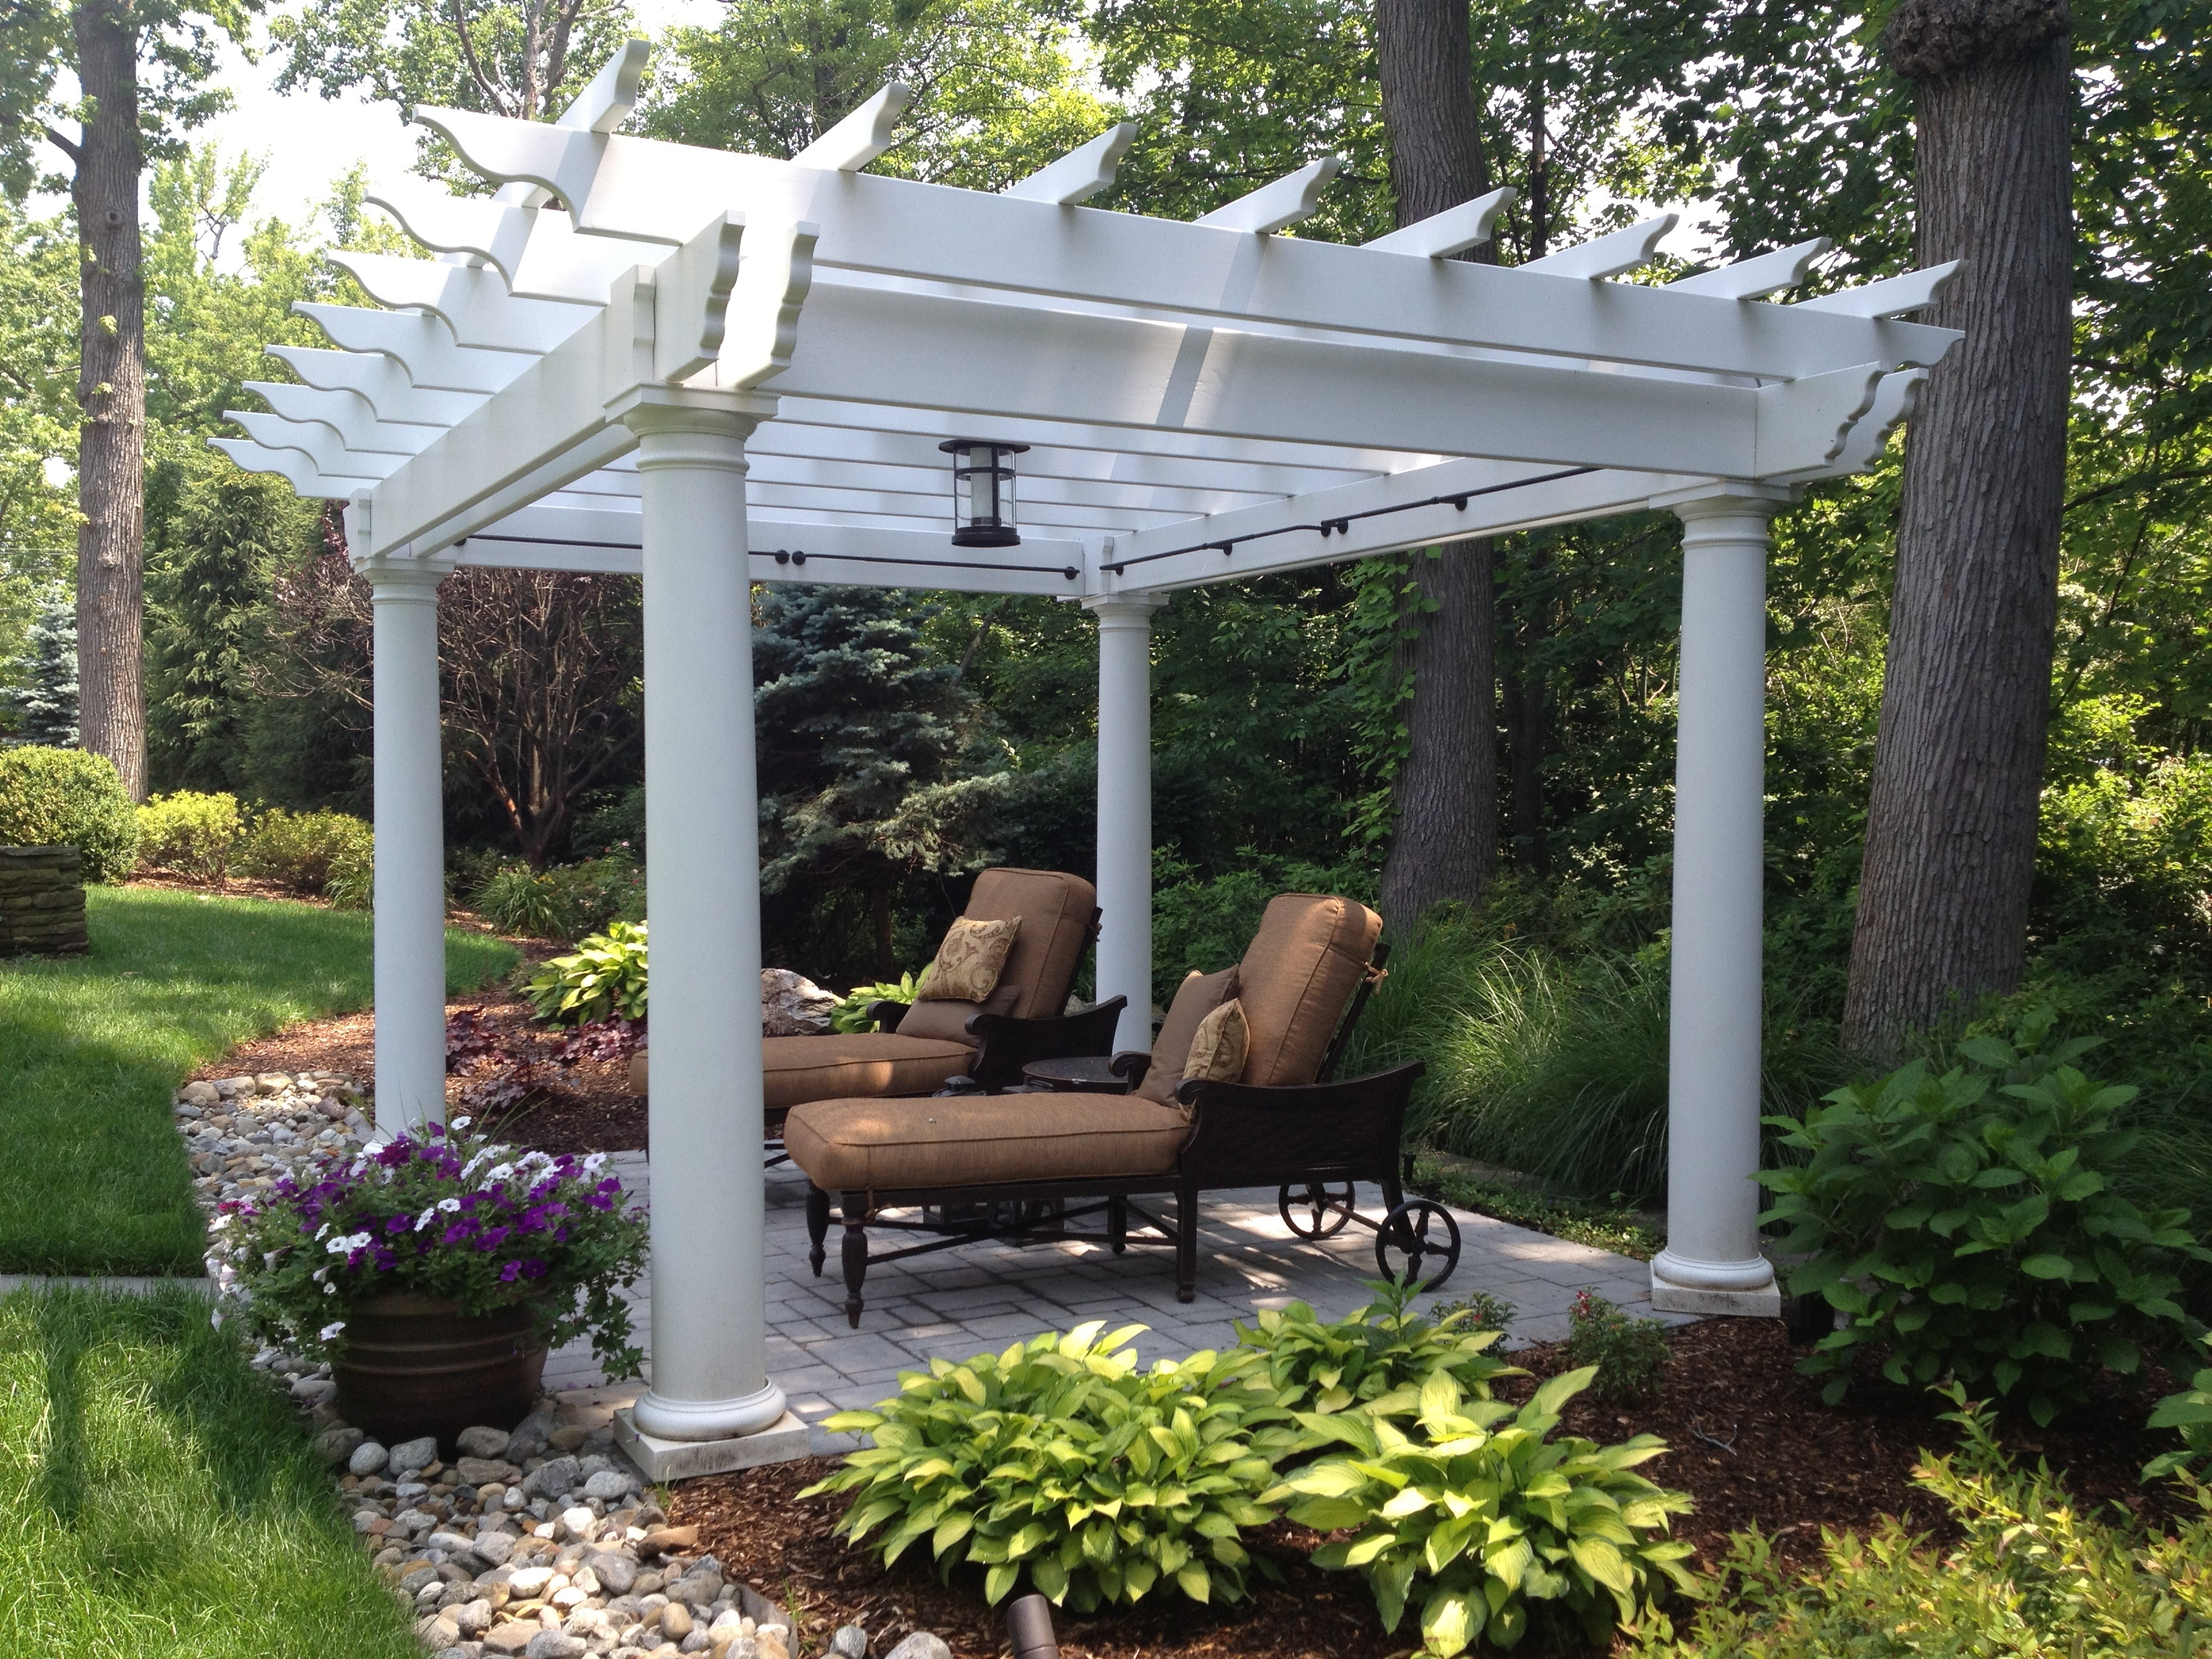 archadeck of miami explores the extended shade capabilites of the pergola